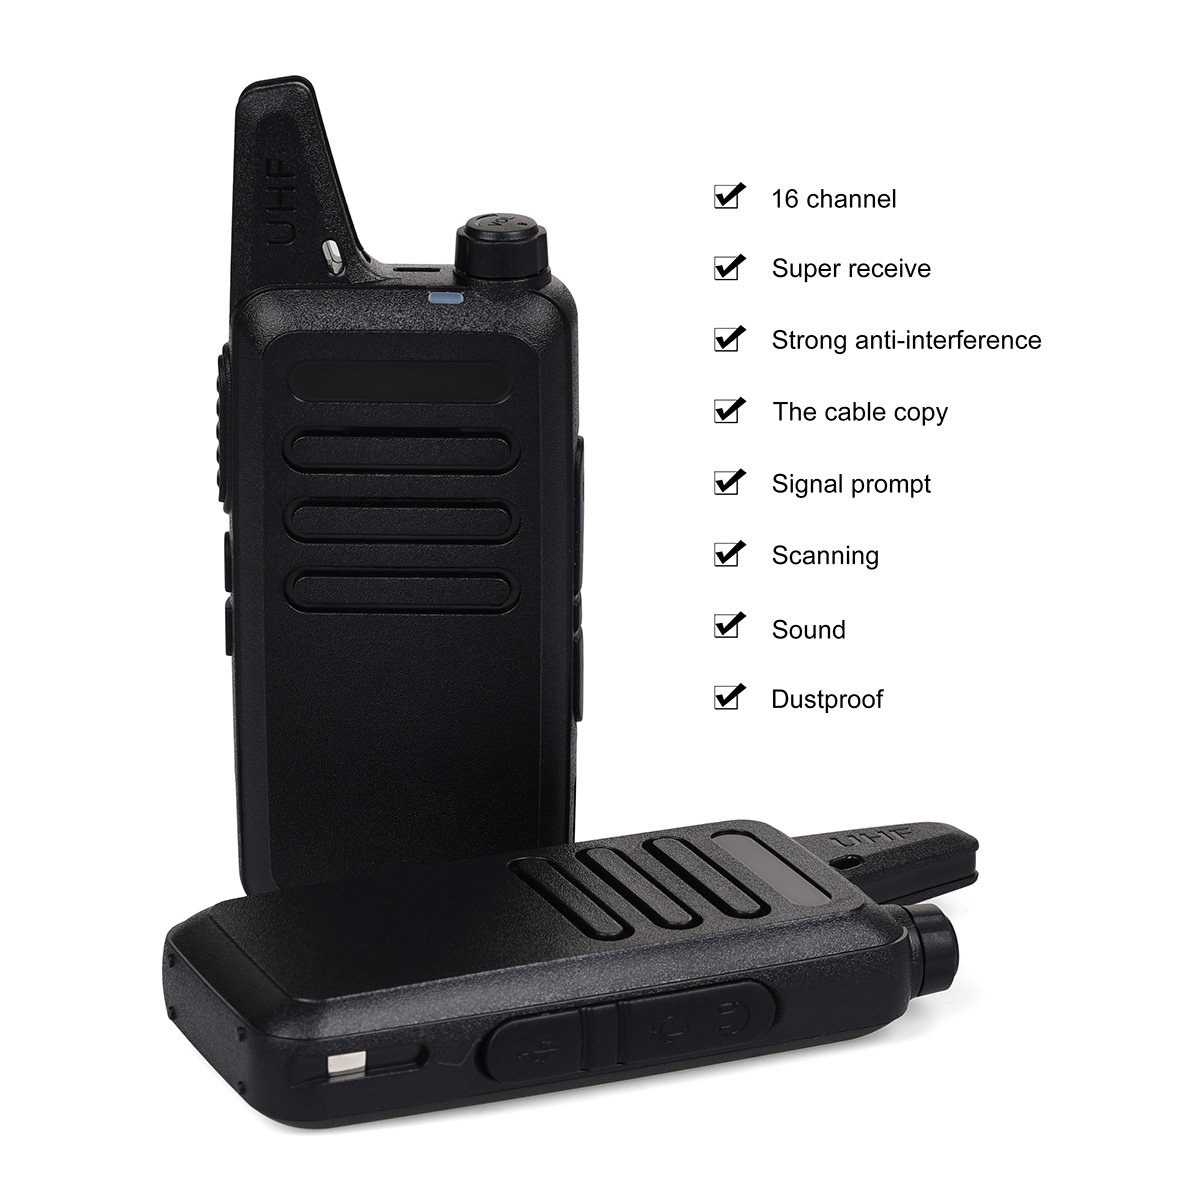 Swiftion Rechargeable Walkie Talkies for Hunting Long Range 2 Way Radio Walky Talky Rechargable Professional interphone for Trave for Police 16 Channel 2 Way Radios with Charger (Pack of 2) by Swiftion (Image #5)